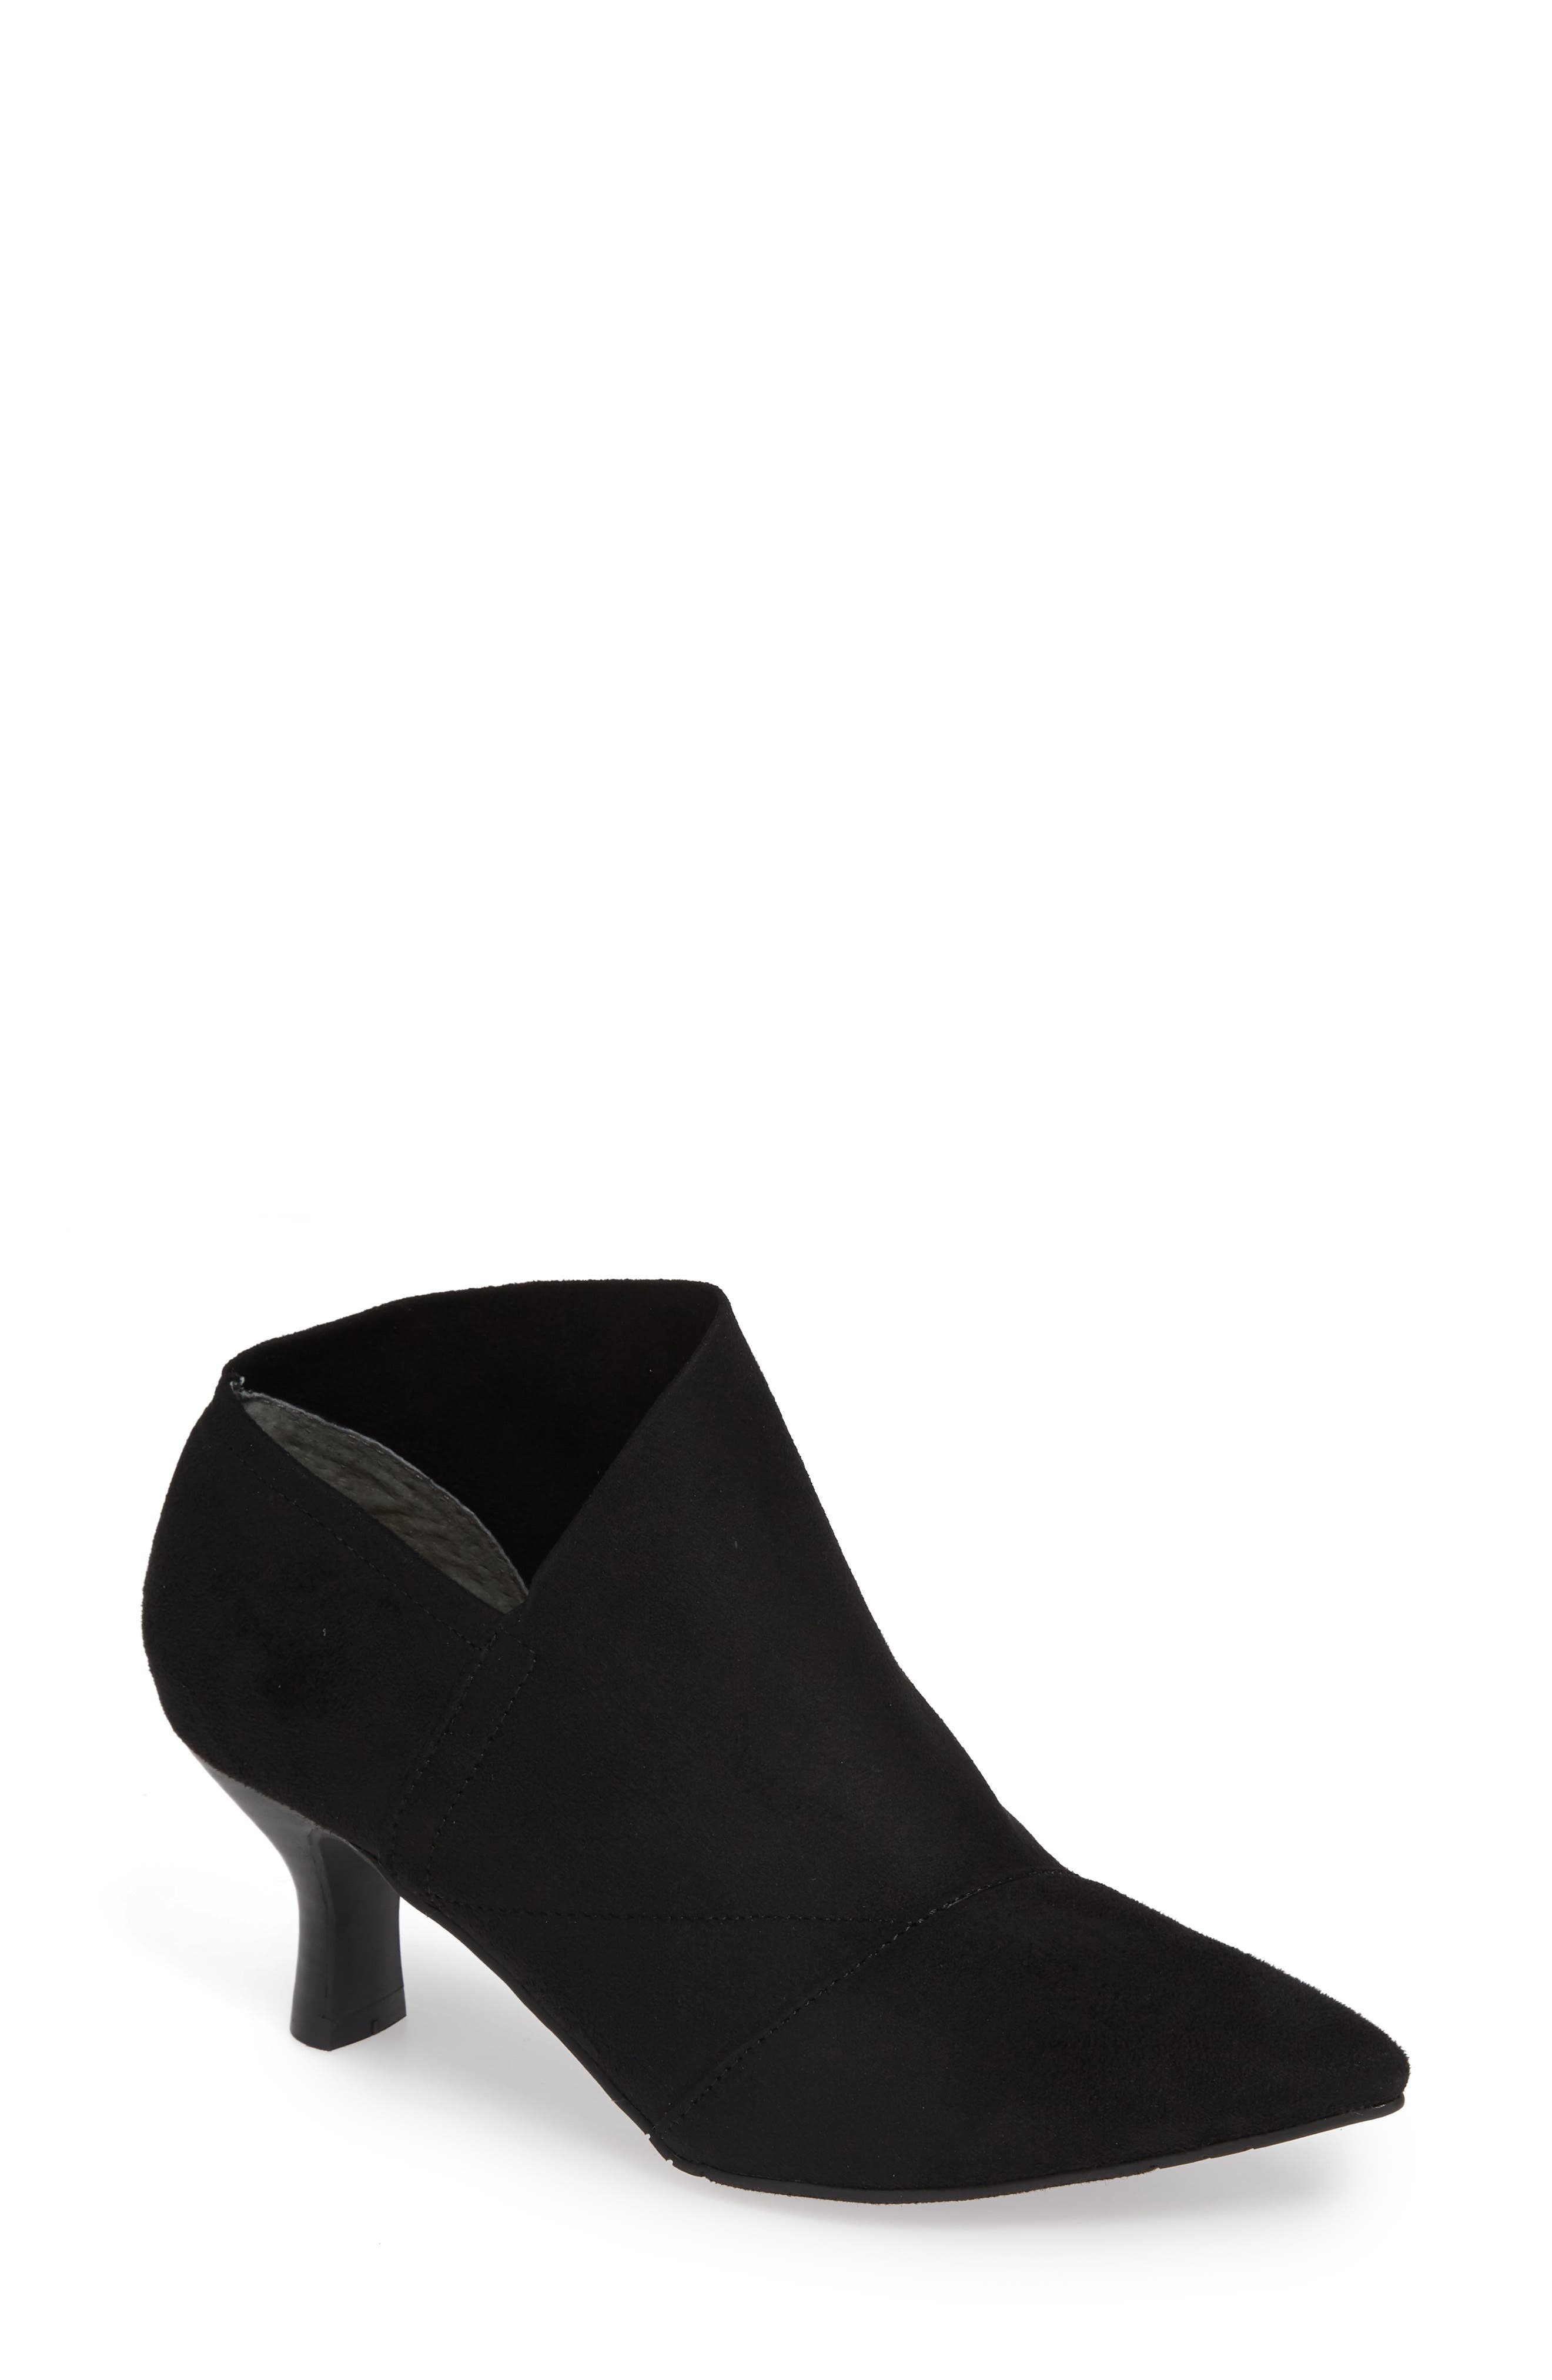 Adrianna Papell Hayes Pointy Toe Bootie- Black